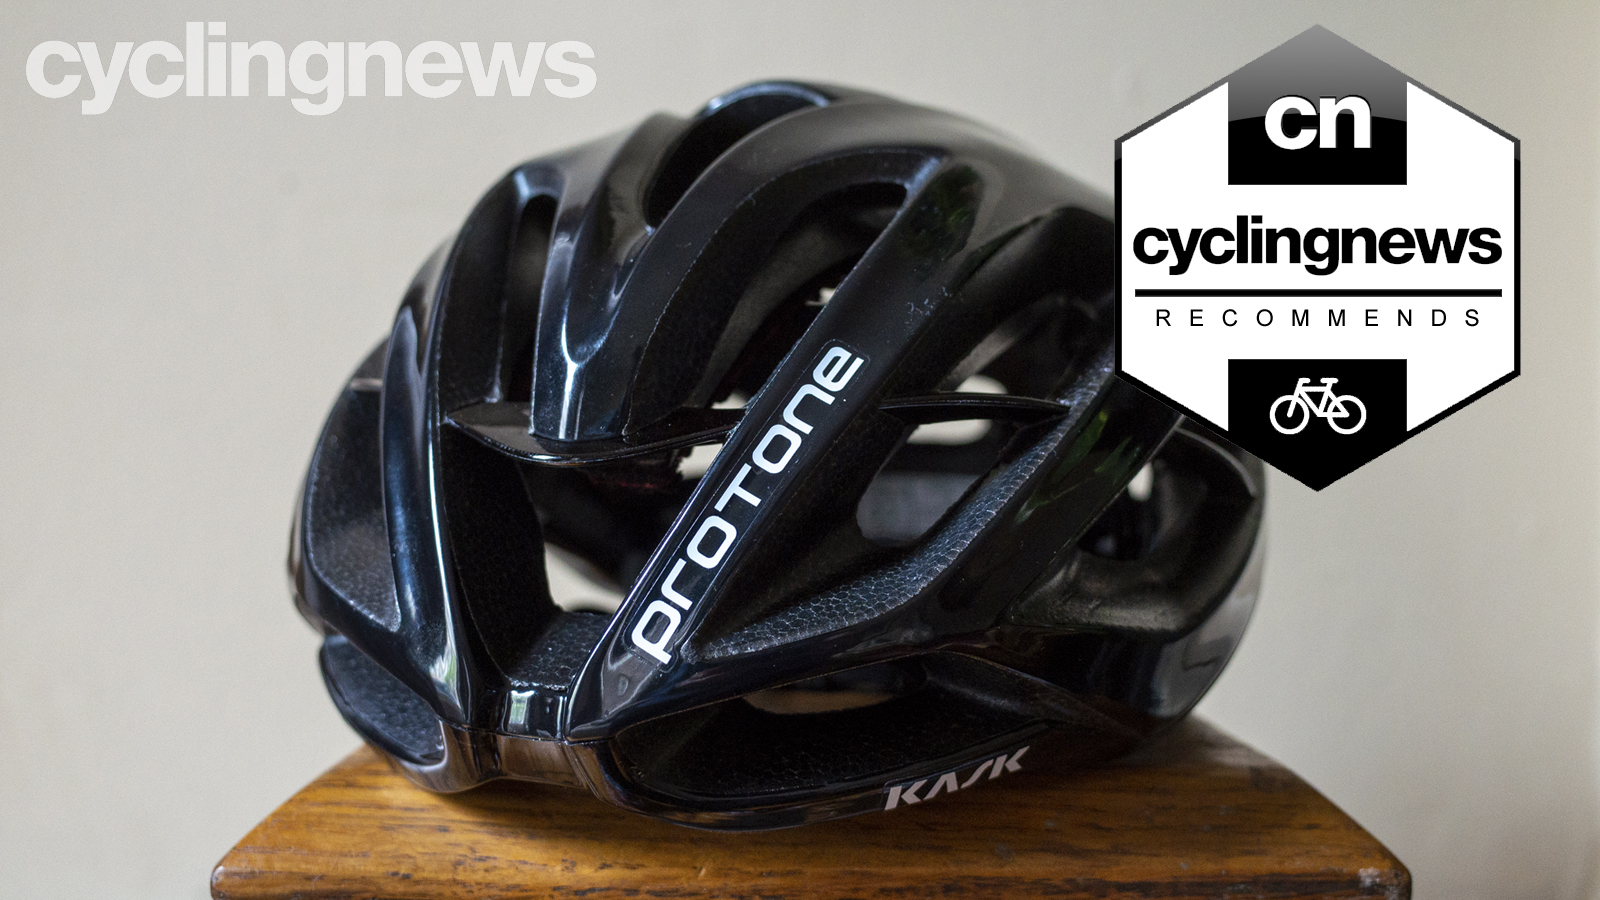 Best Road Bike Helmets 2021 Best road bike helmets: Our favourite helmets ridden and rated